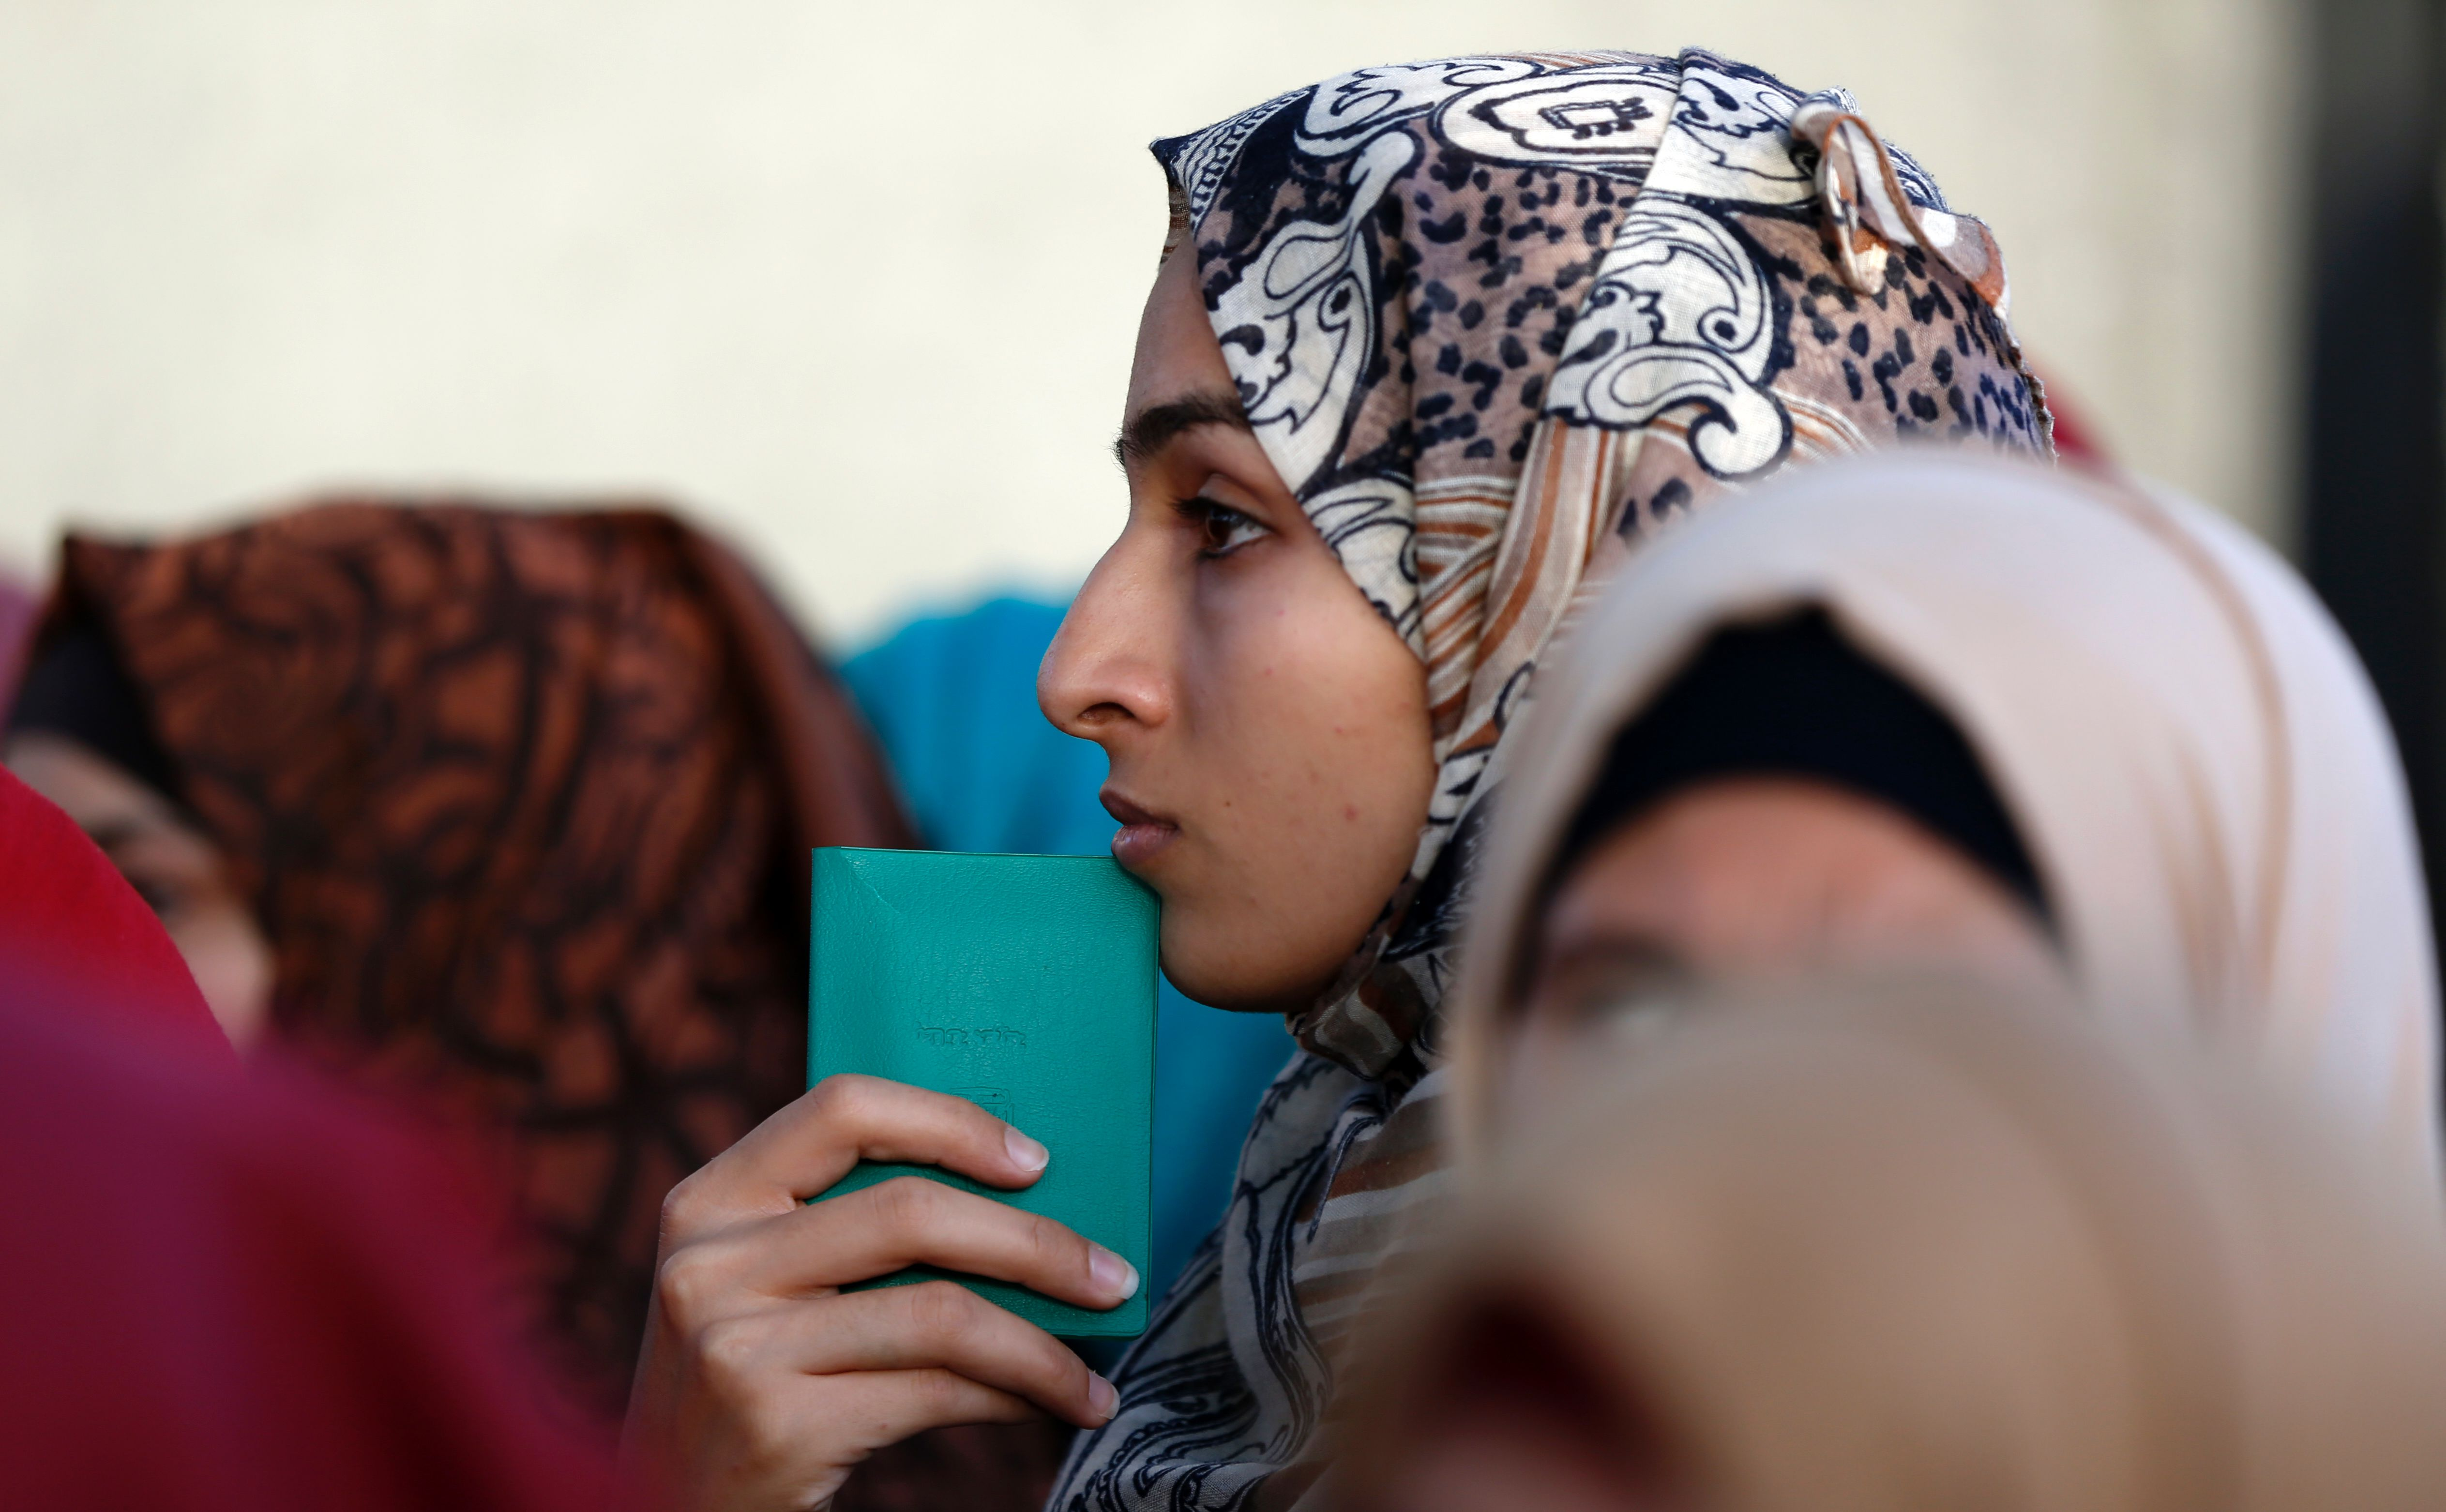 A Palestinian woman holds her identity card as she waits in queue at the Qalandia checkpoint in the occupied West Bank on June 9, 2017, in order to attend the second Friday prayers of the Muslim holy month of Ramadan at al-Aqsa mosque in Jerusalem. (Photo: ABBAS MOMANI / AFP / Getty Images) American Muslim Identity Muslim Reformers Islamic Reform